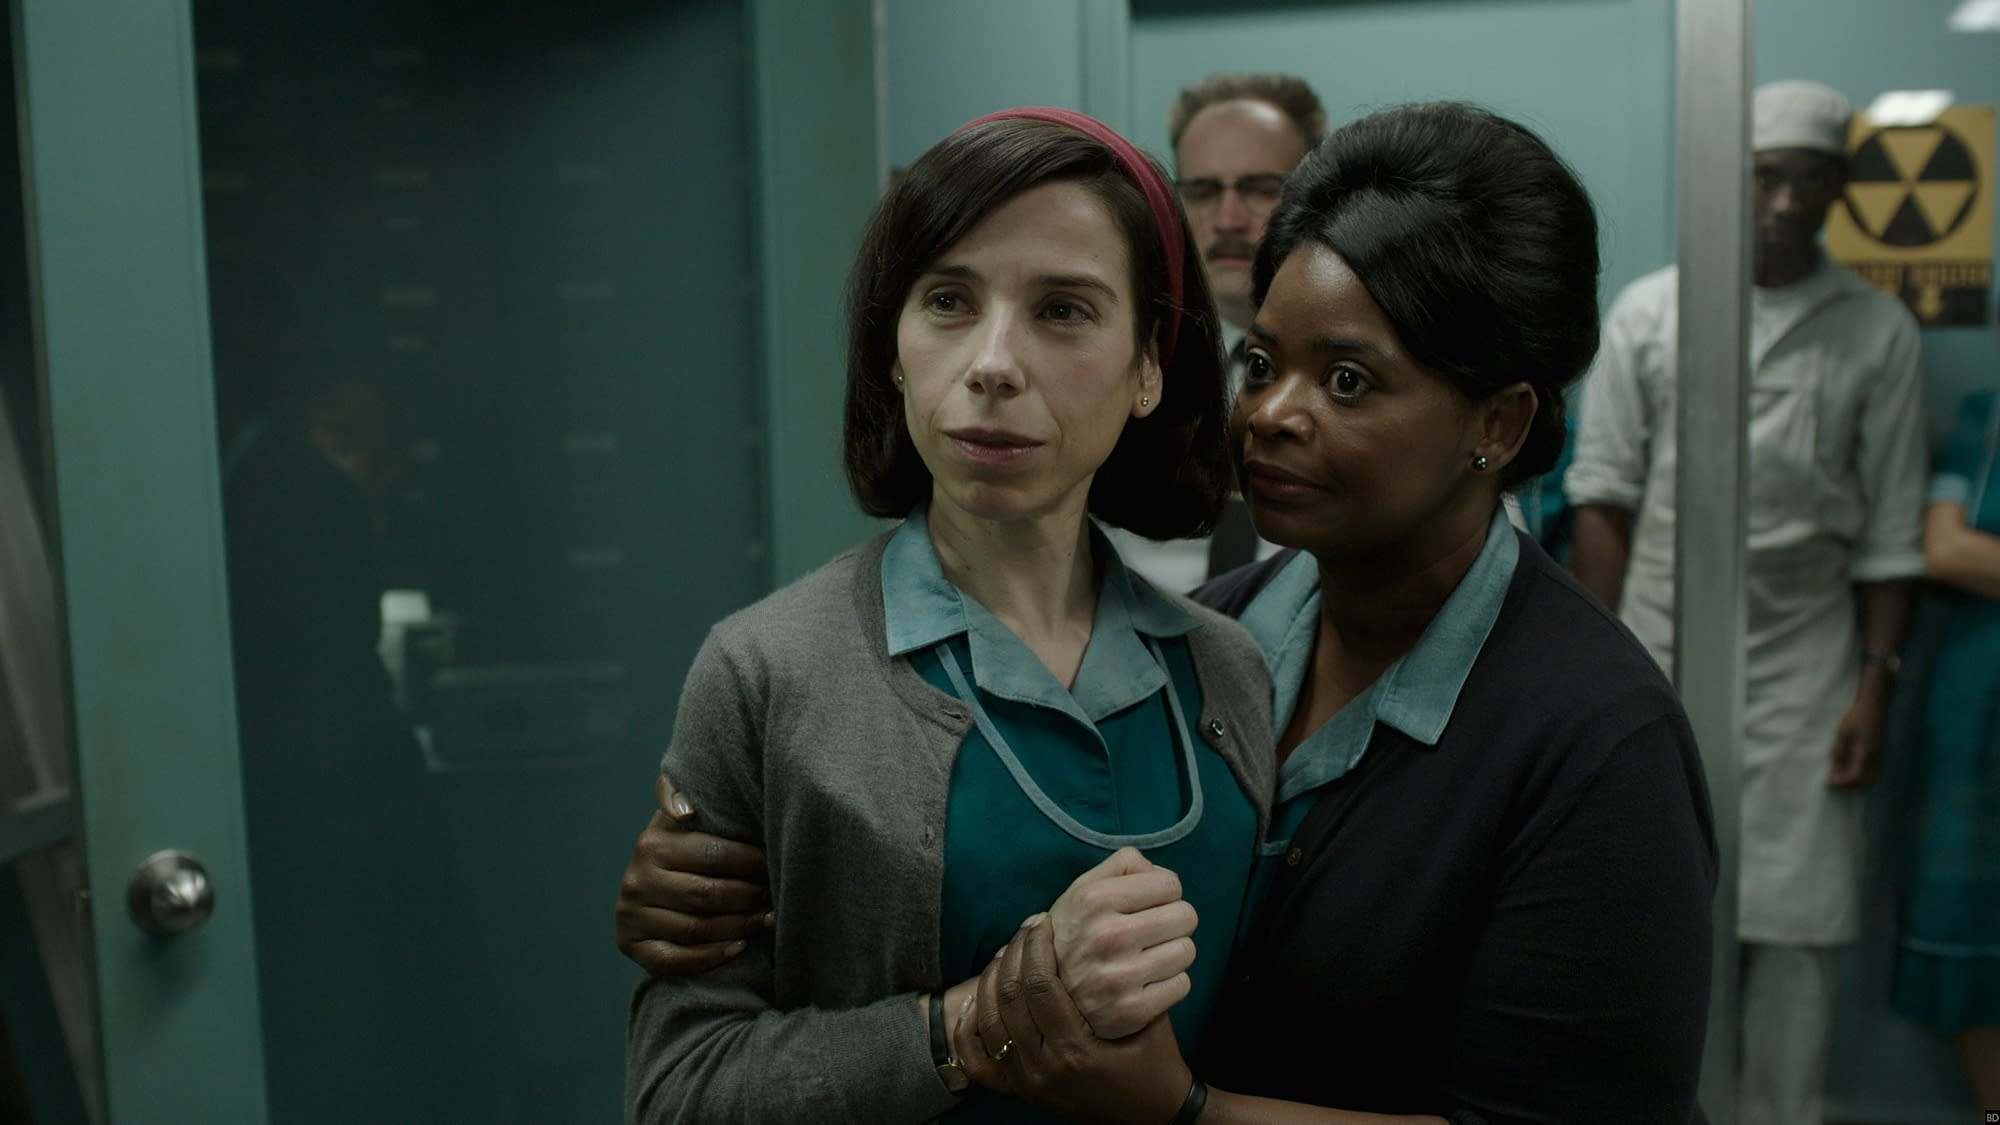 4 New HQ Images From Guillermo Del Toro's 'The Shape Of Water'